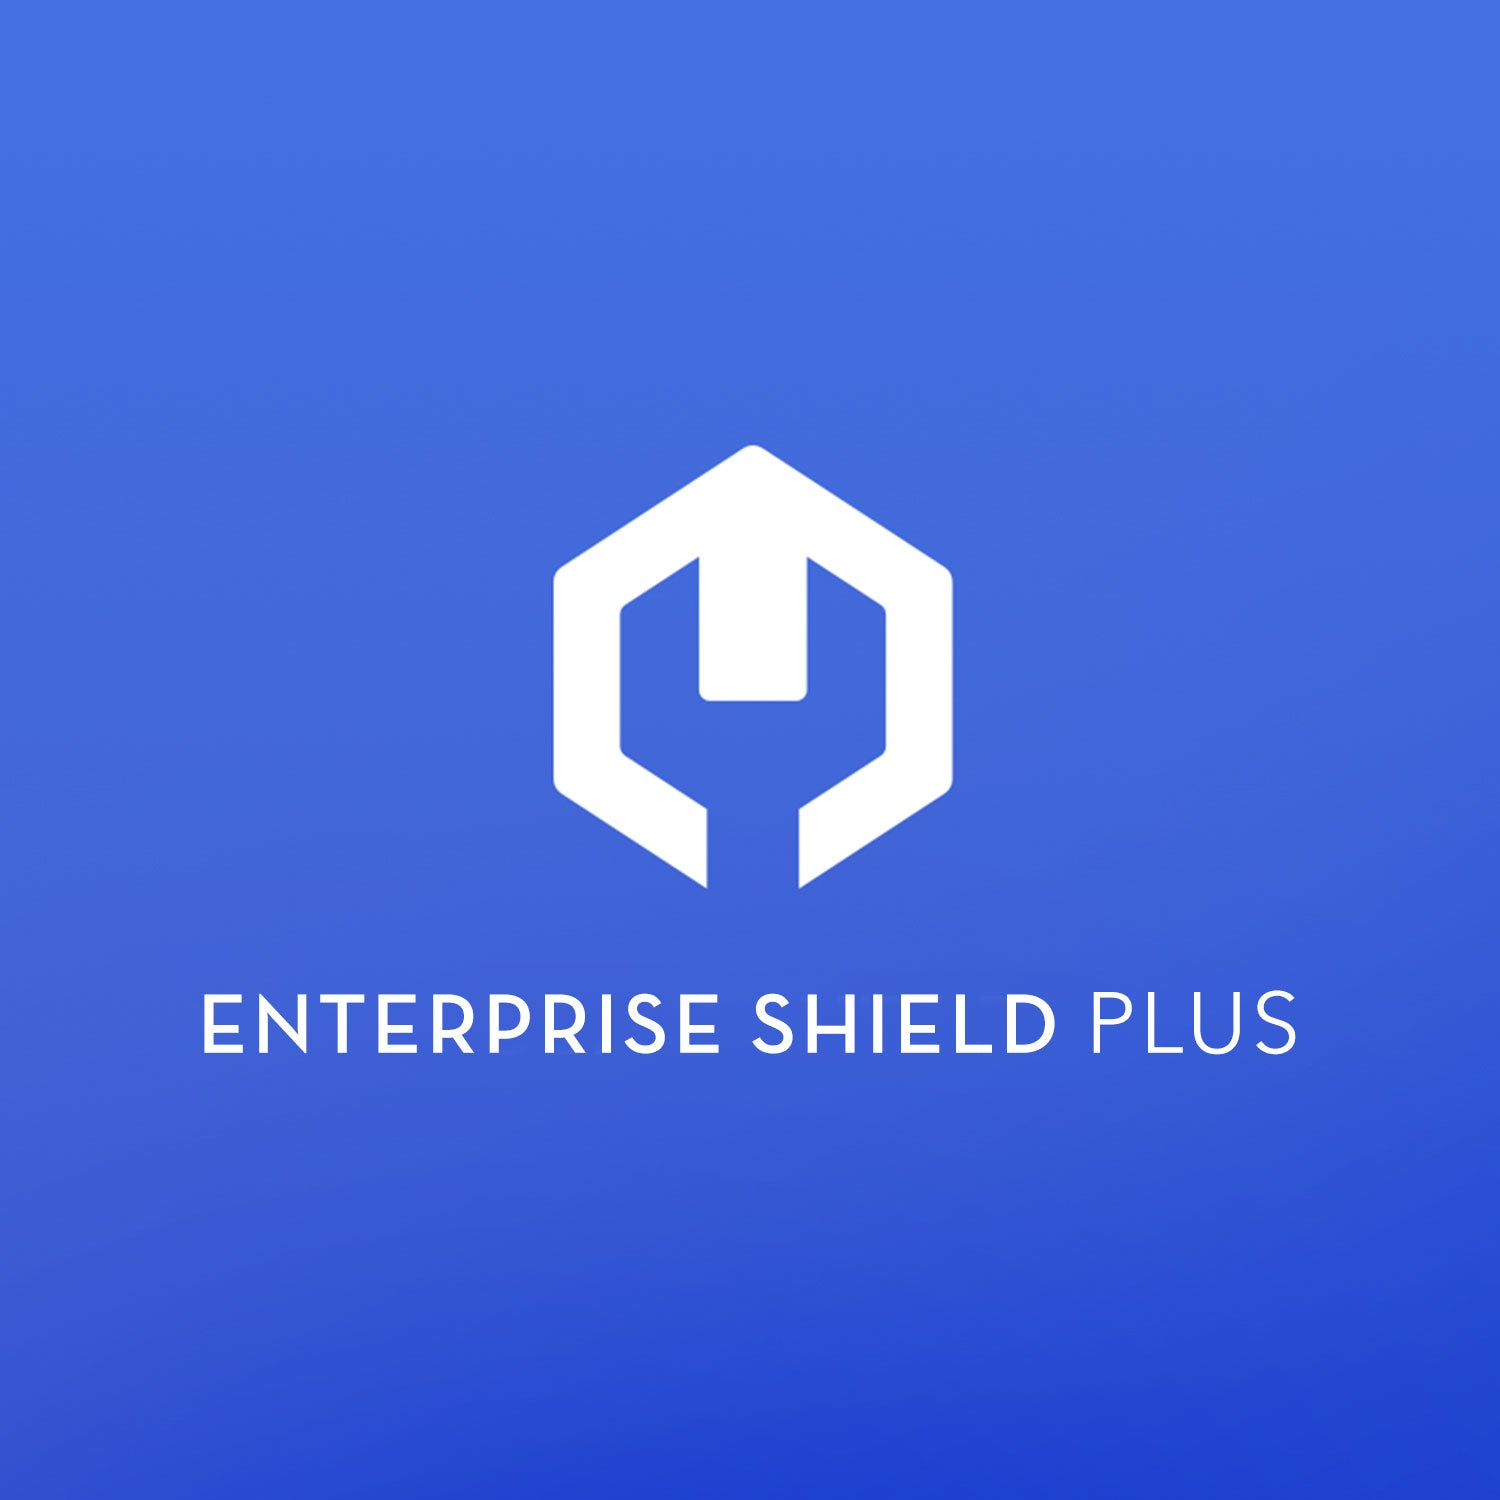 DJI Enterprise Shield Plus (Zenmuse XTR 640)